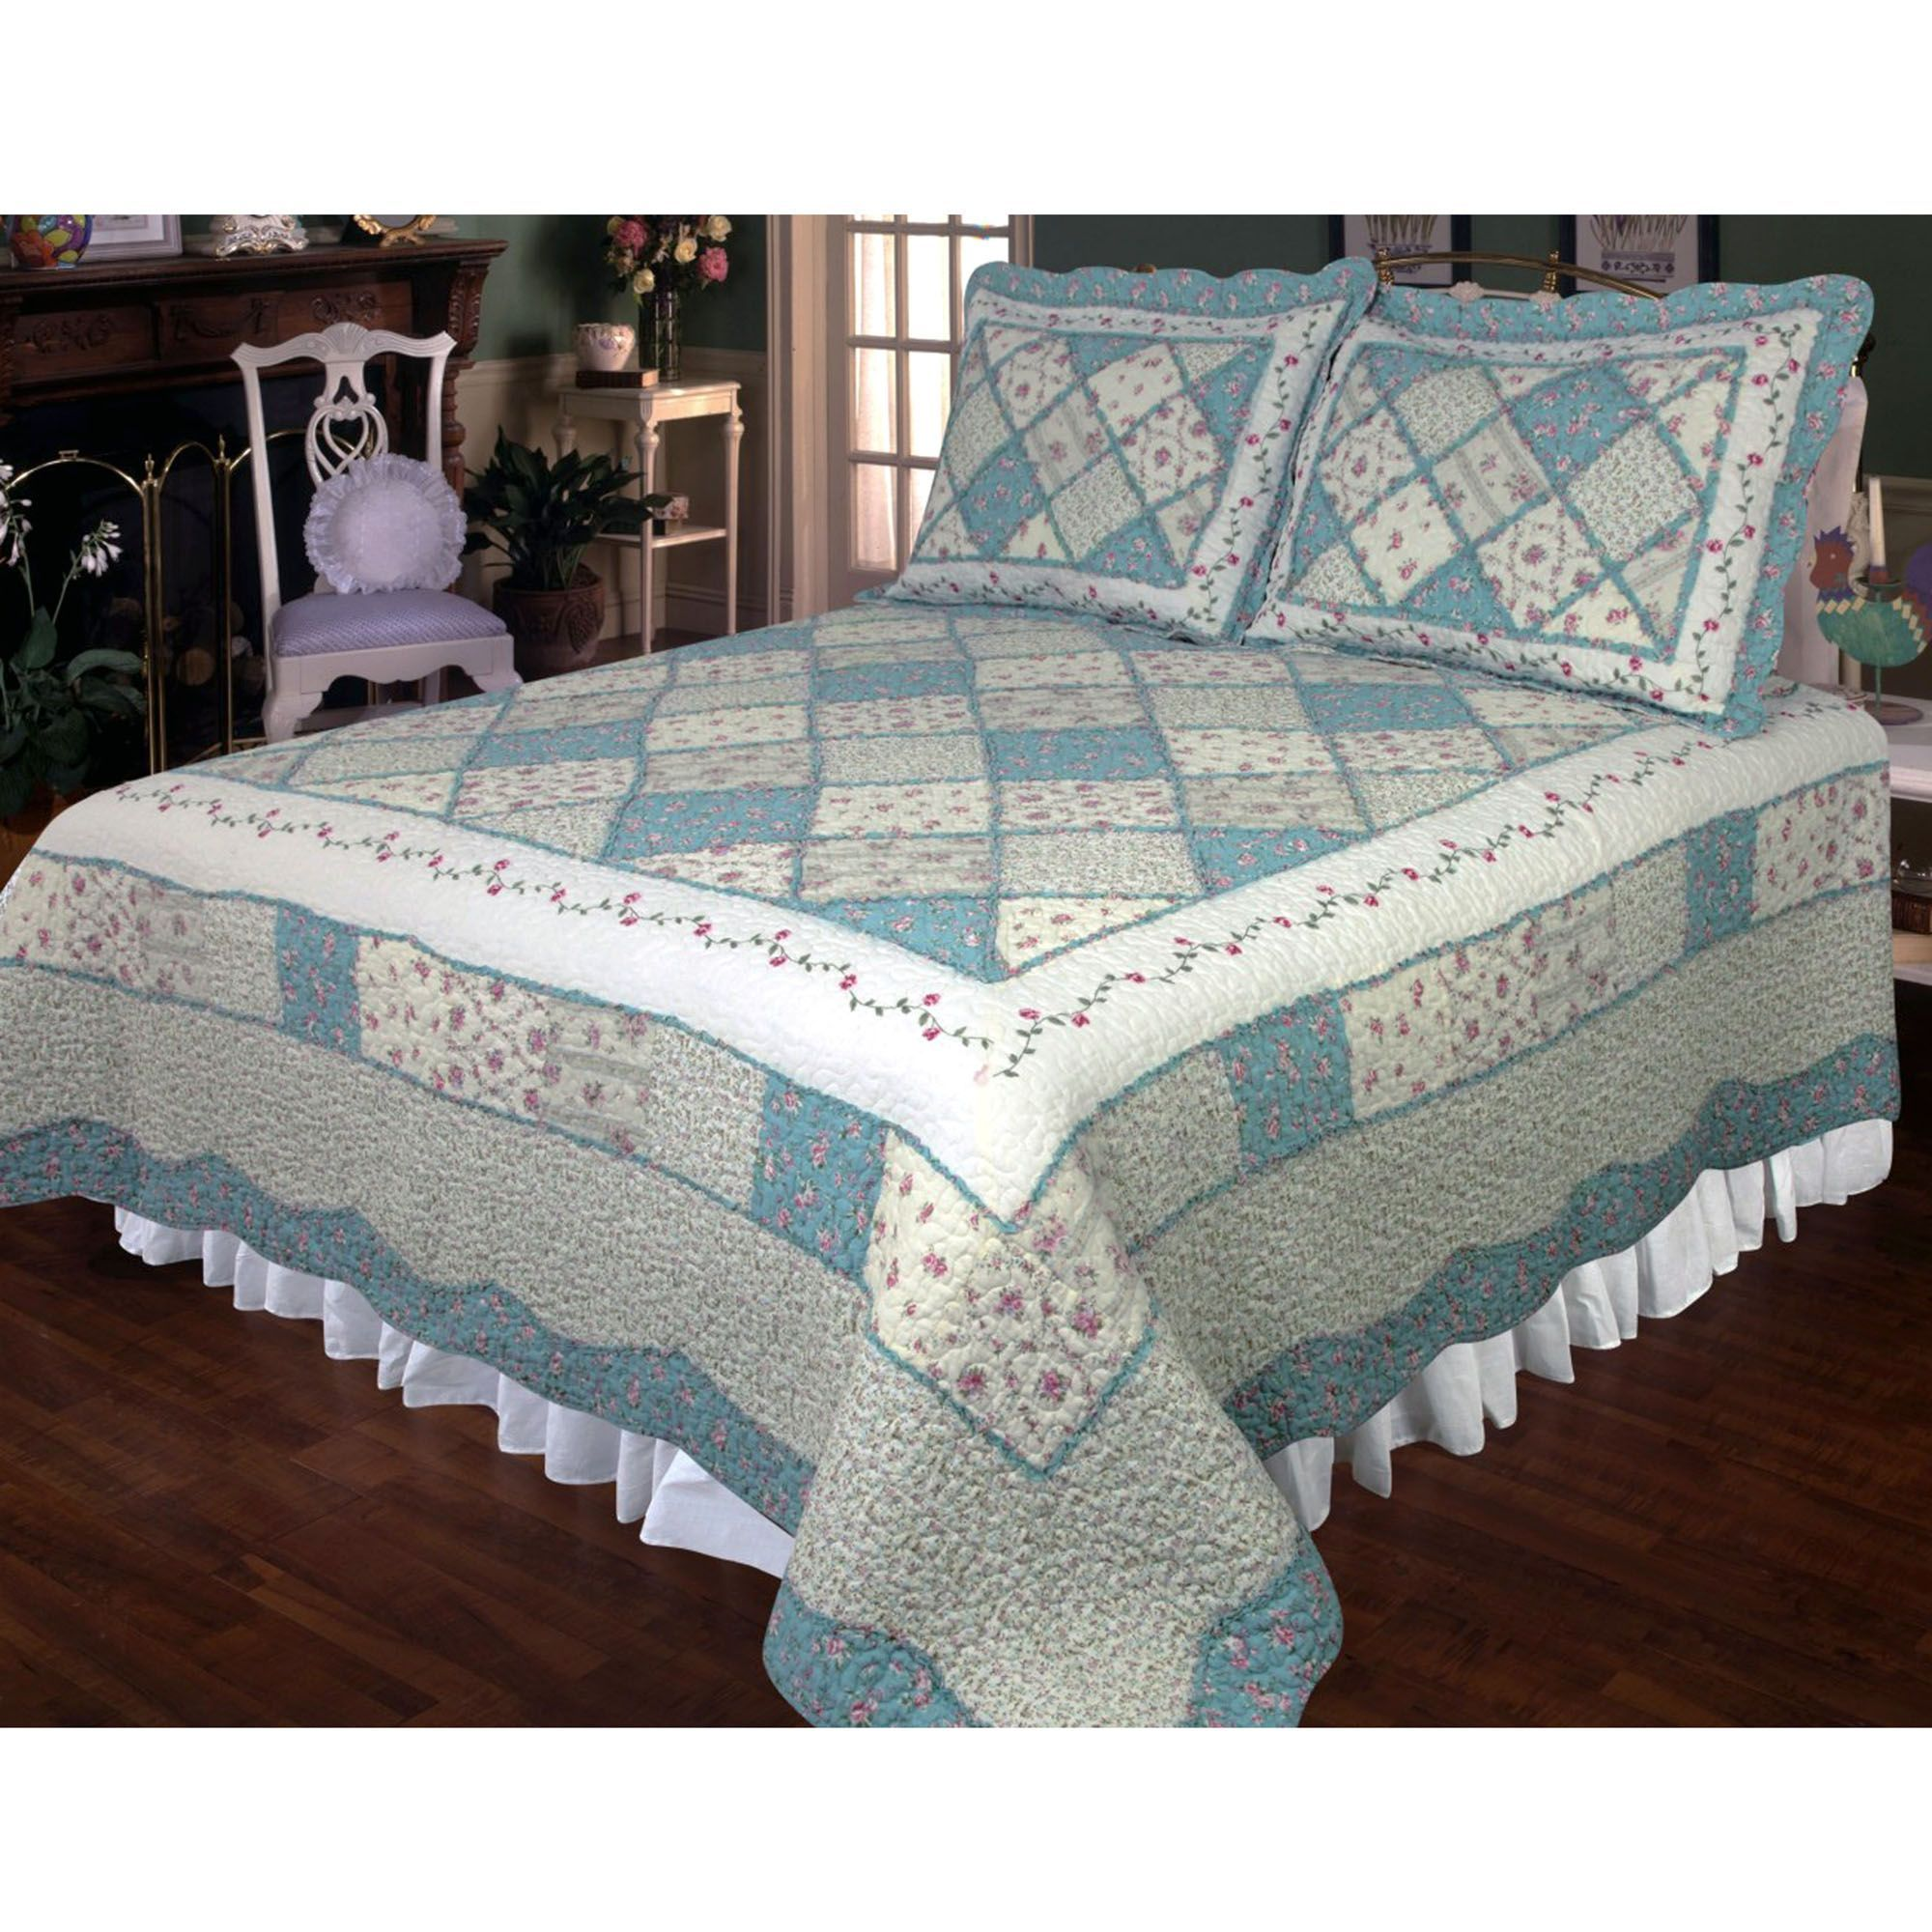 gone zulily quilt blue ave light p sicily set hotel all medallion main